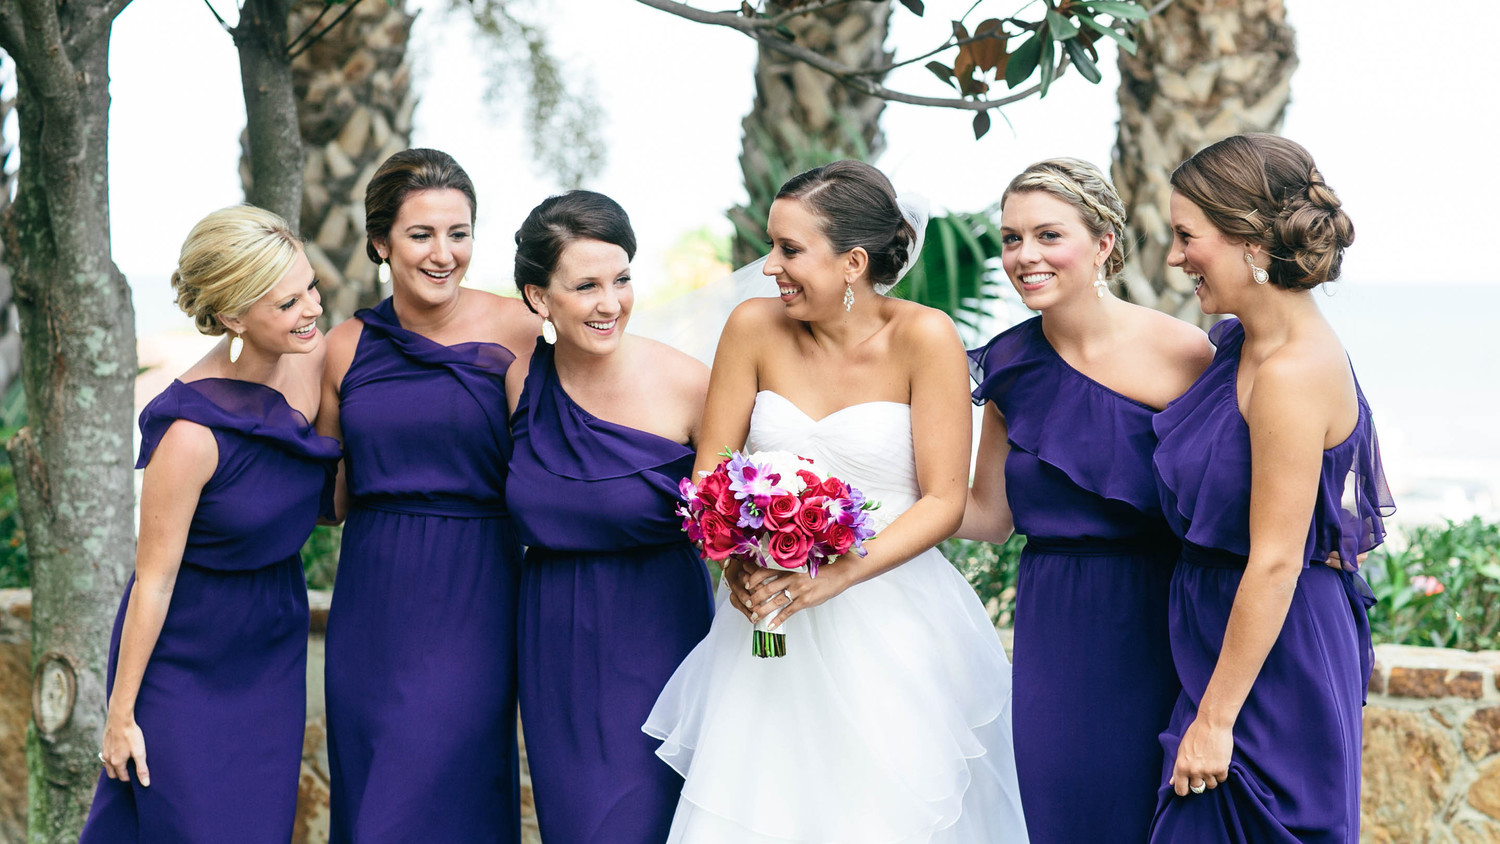 The Best Bridesmaid S Dress Colors For Fall Weddings